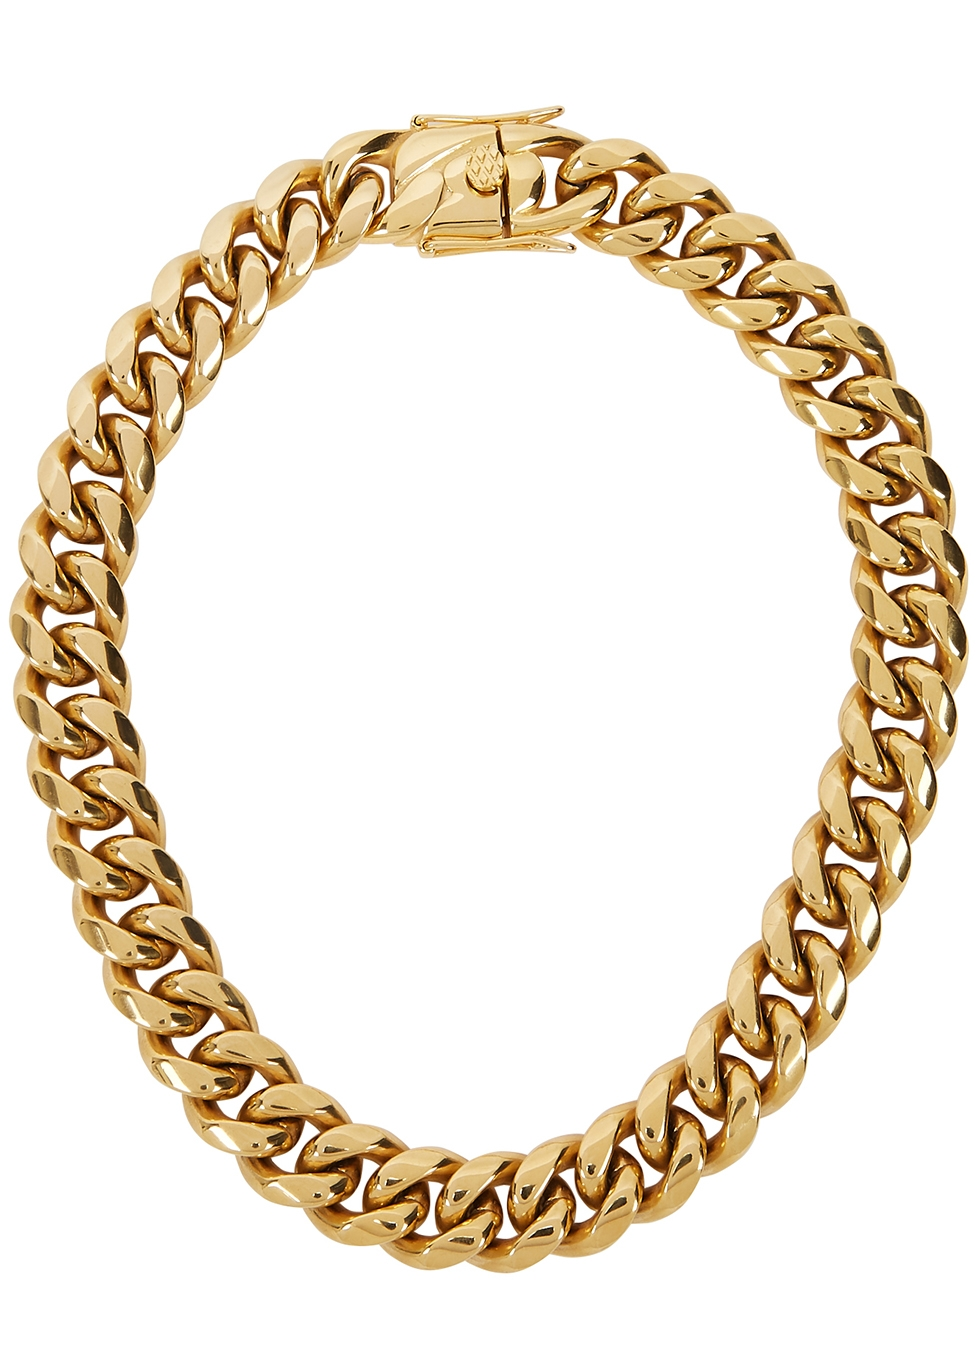 Ruth gold-plated chain necklace